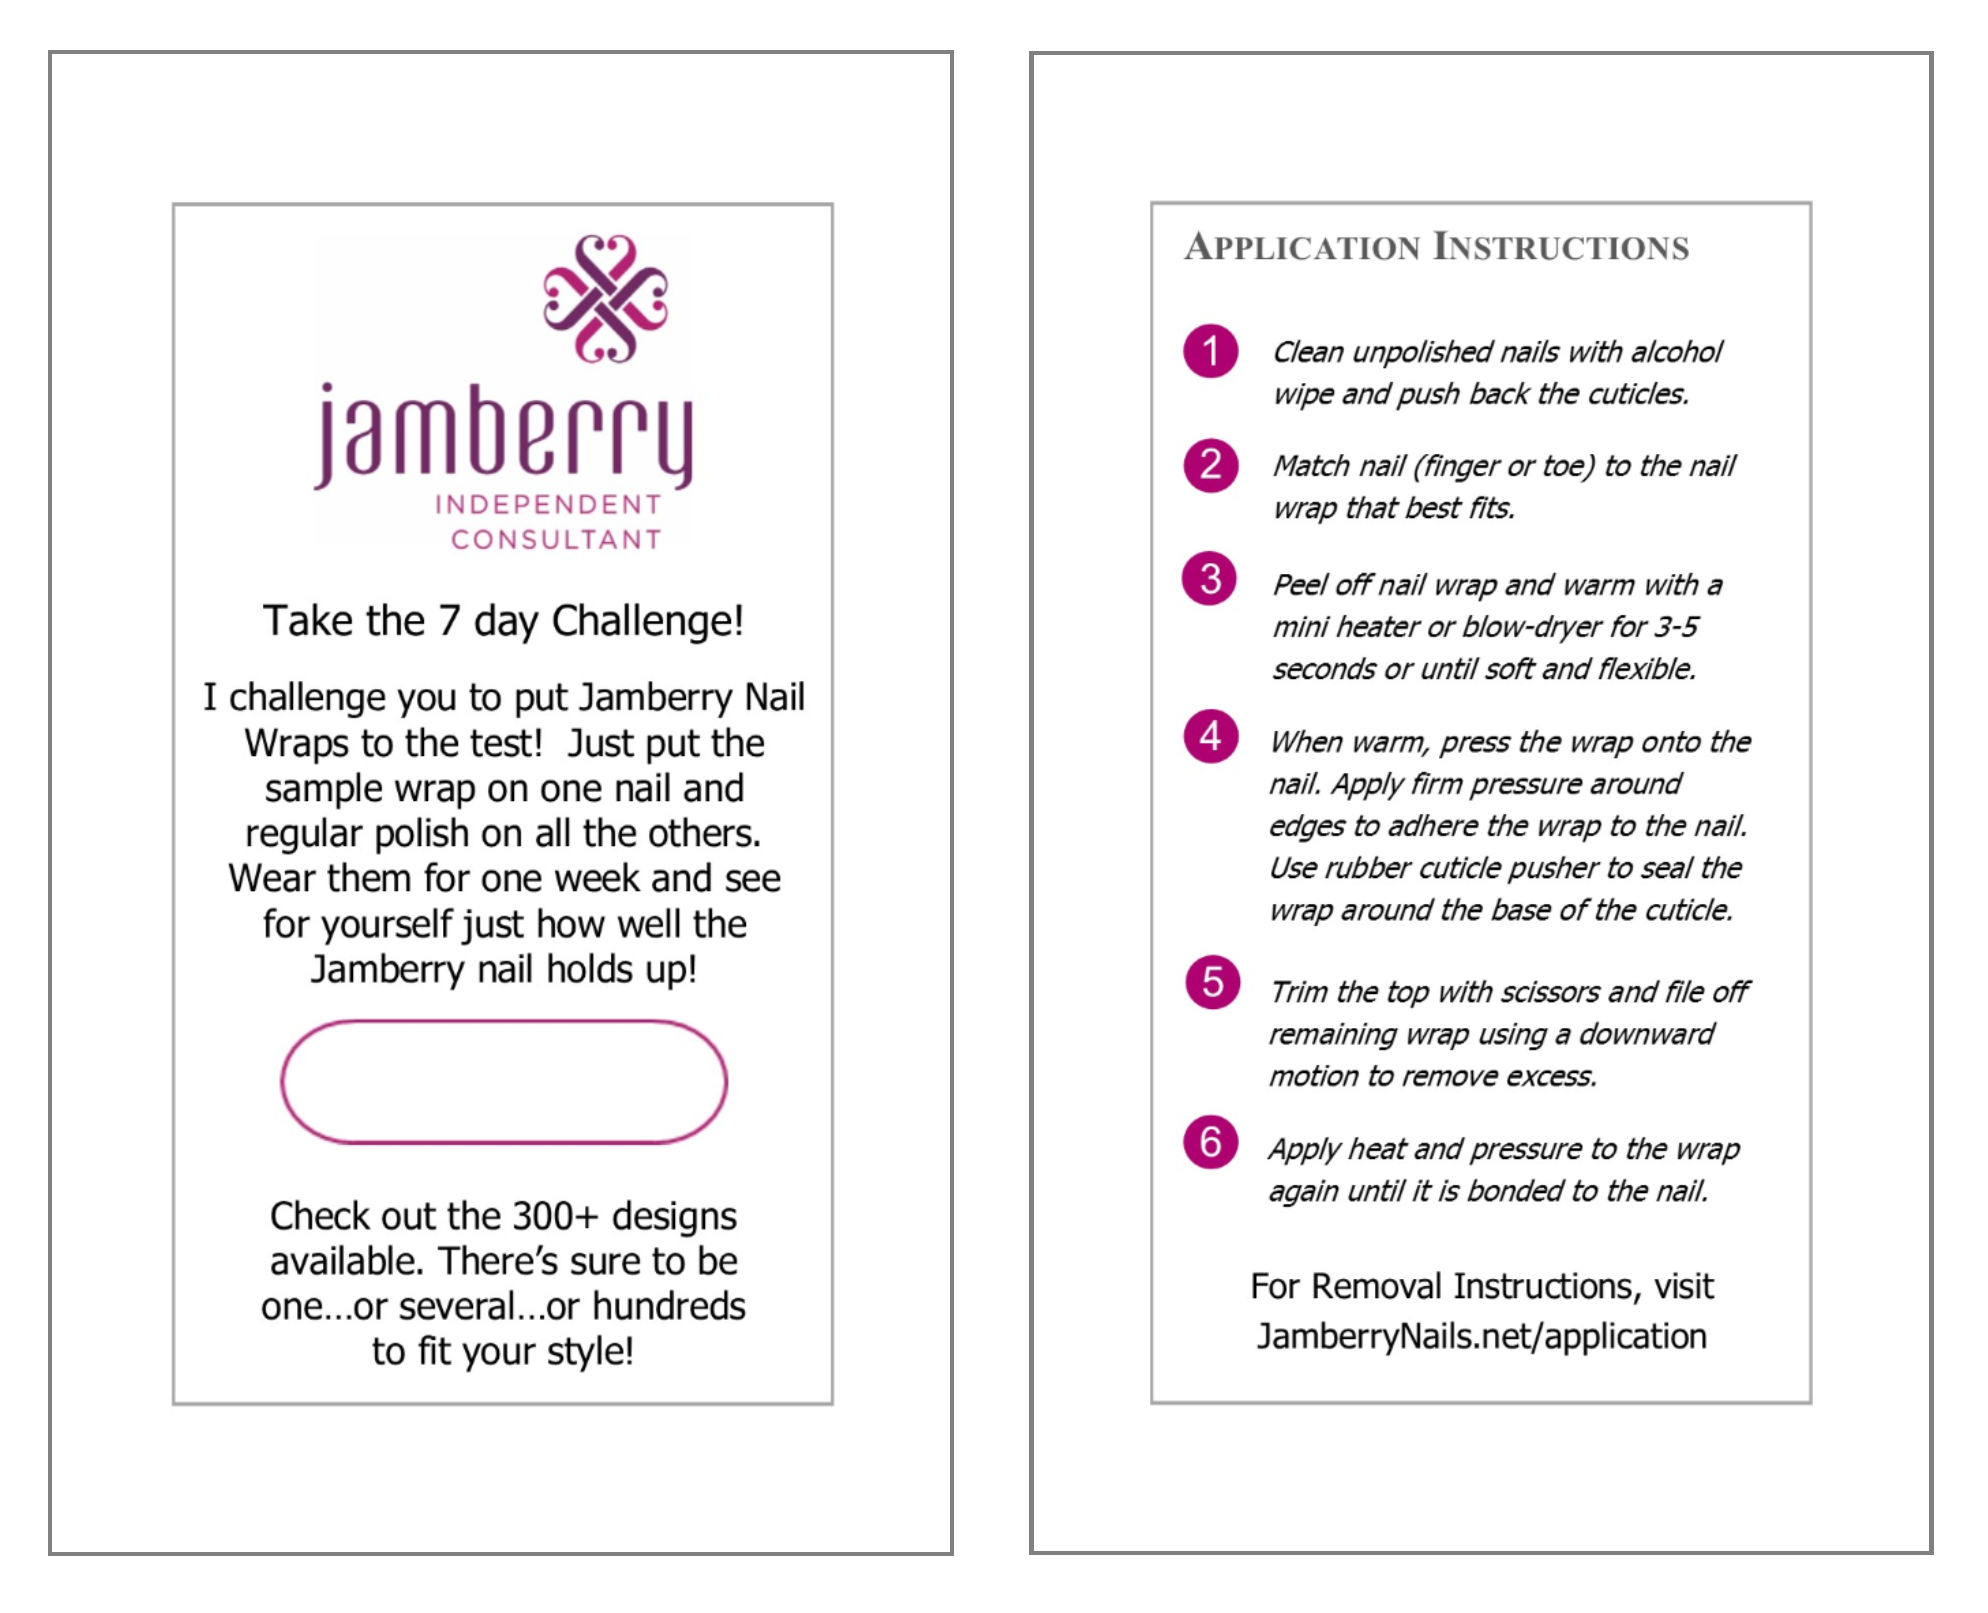 Send the 7 day challenge cards to new customers and get them hooked jamberry consultant business cards send the 7 day challenge cards to new customers and get them hooked on jamberry reheart Choice Image